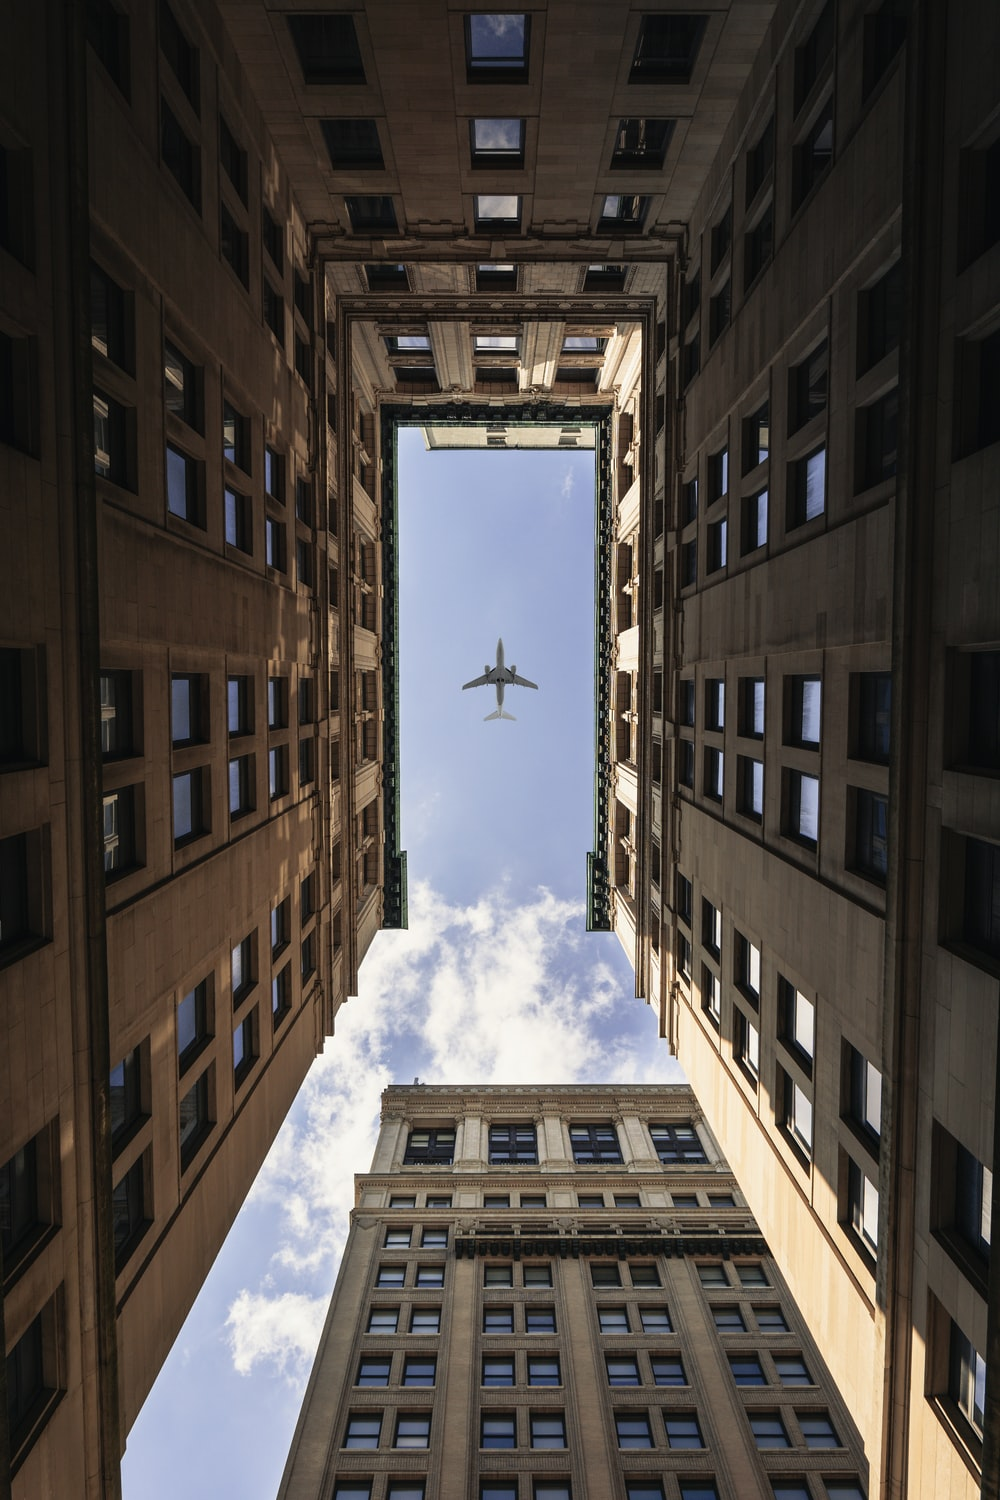 airplane flying on top of high rise buildings